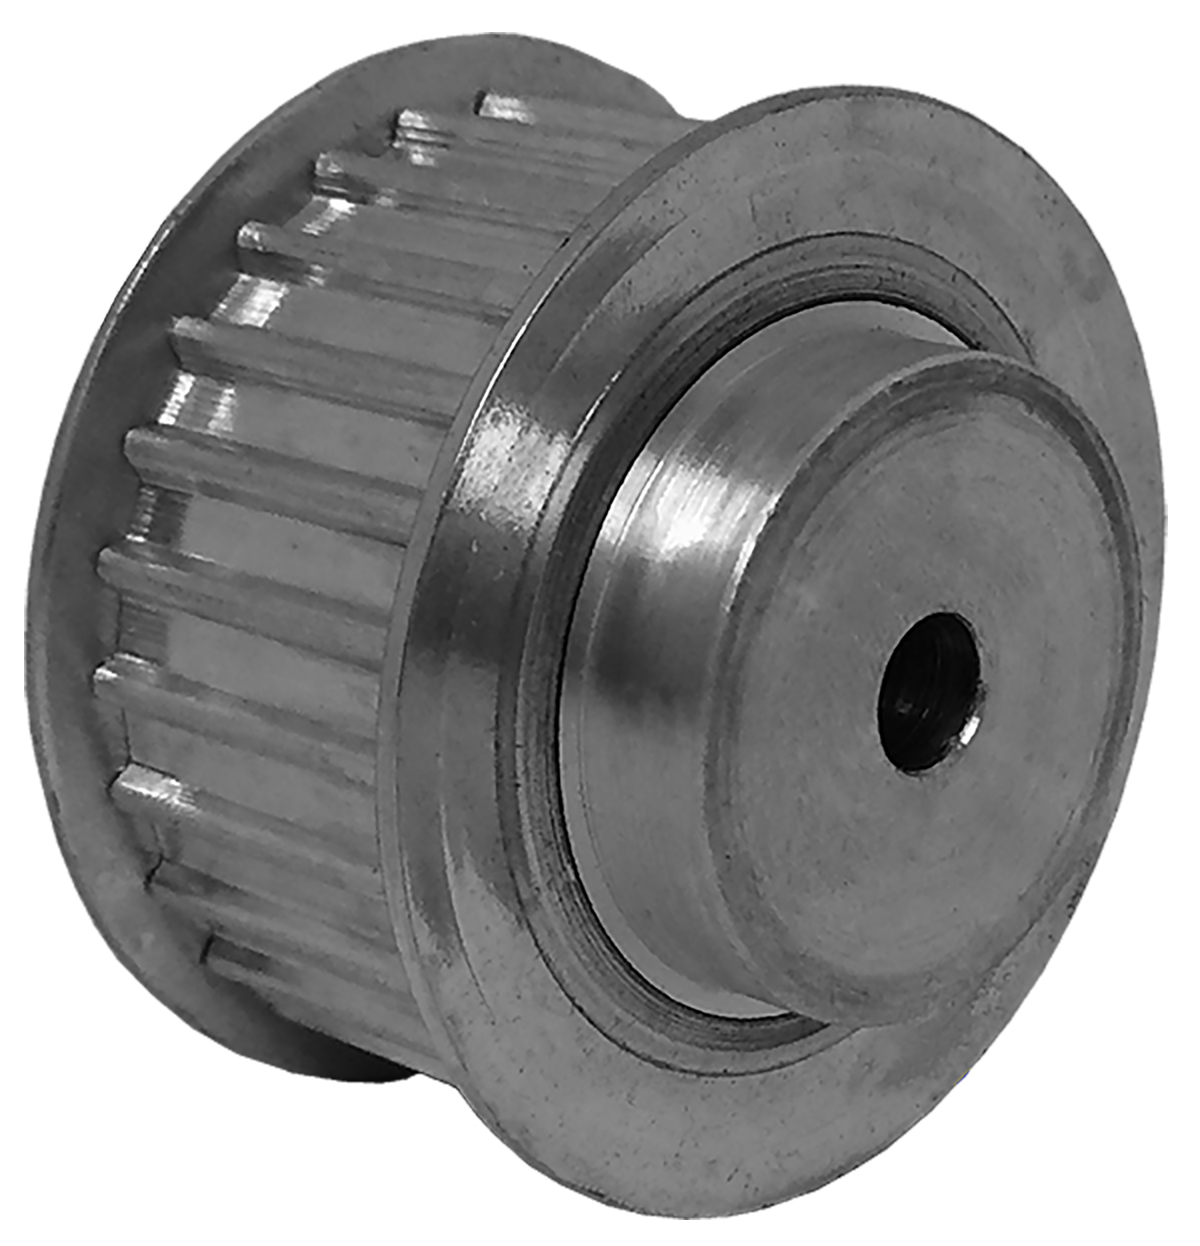 27AT5/26-2 - Aluminum Metric Pulleys